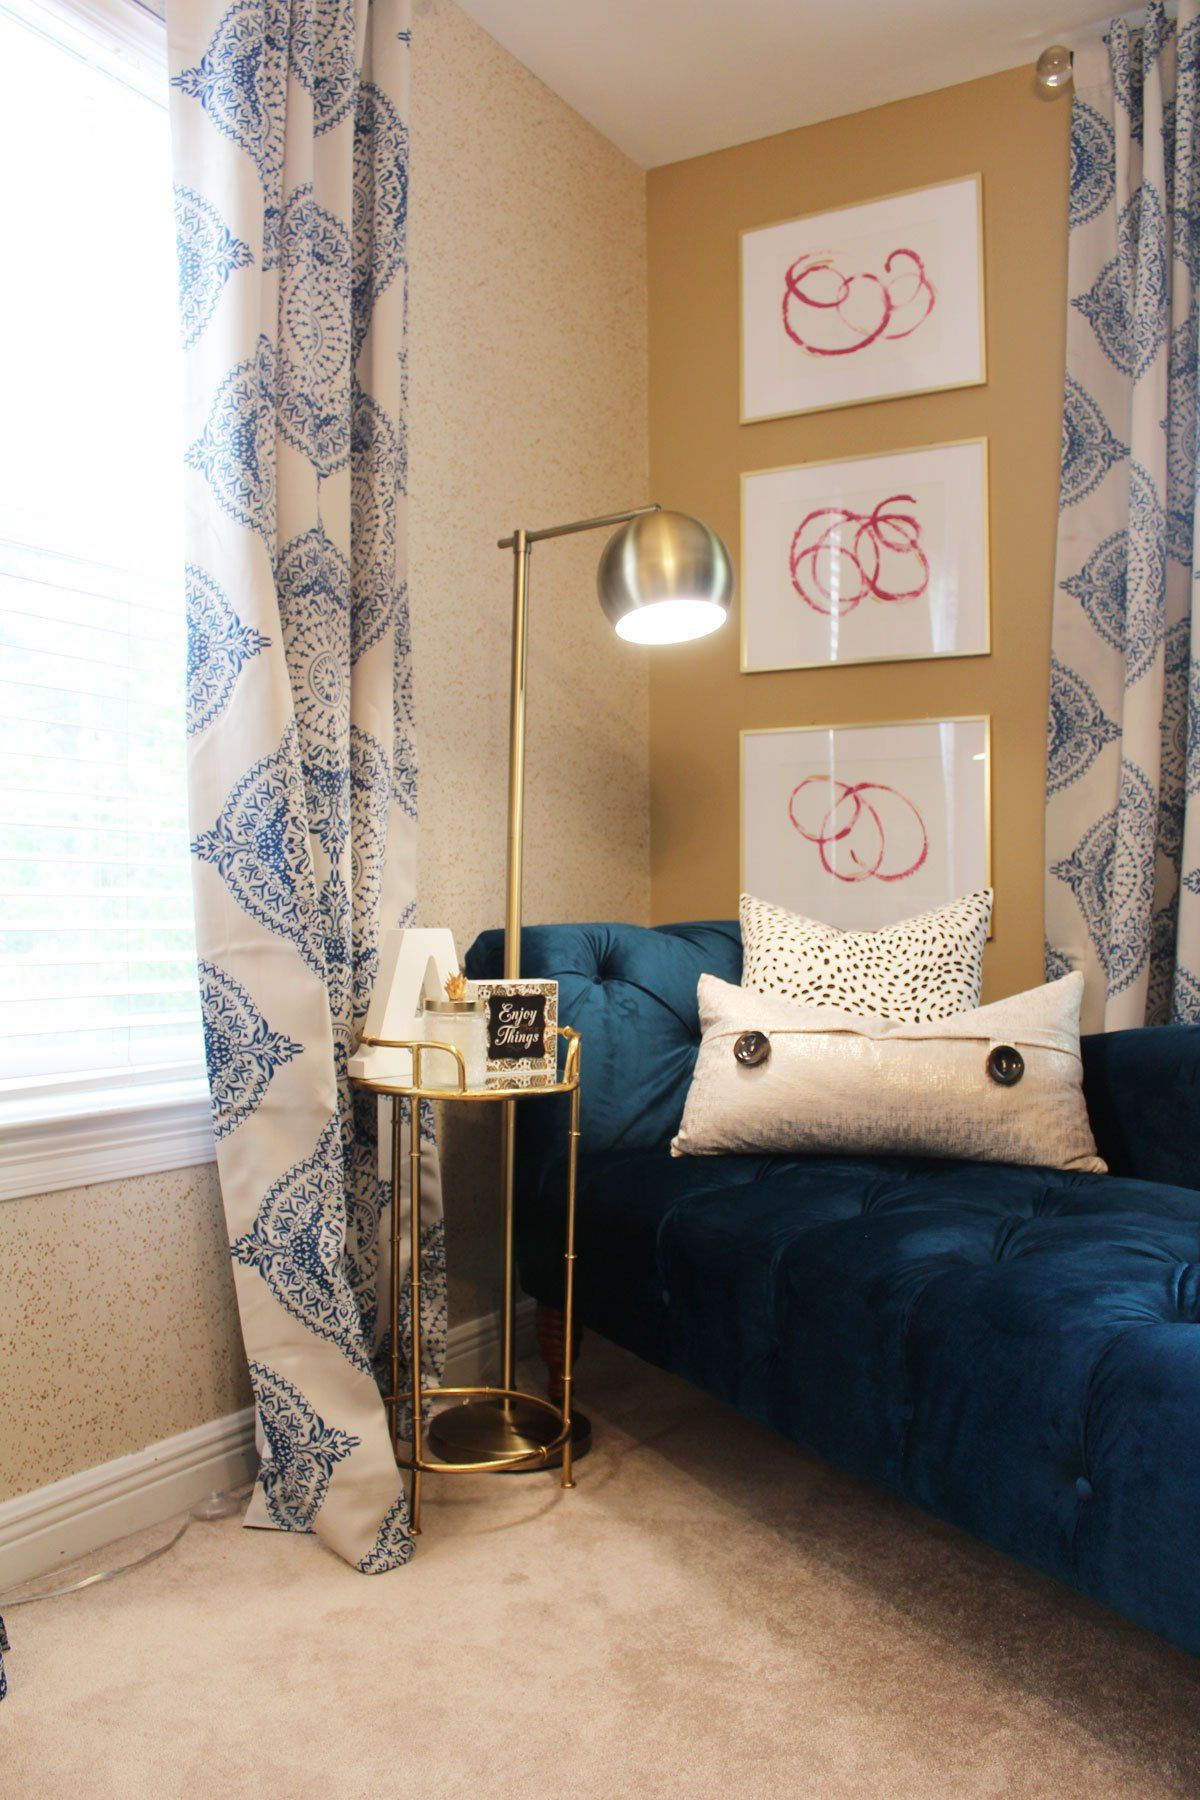 pink and blue transitional bedroom reveal  before  after